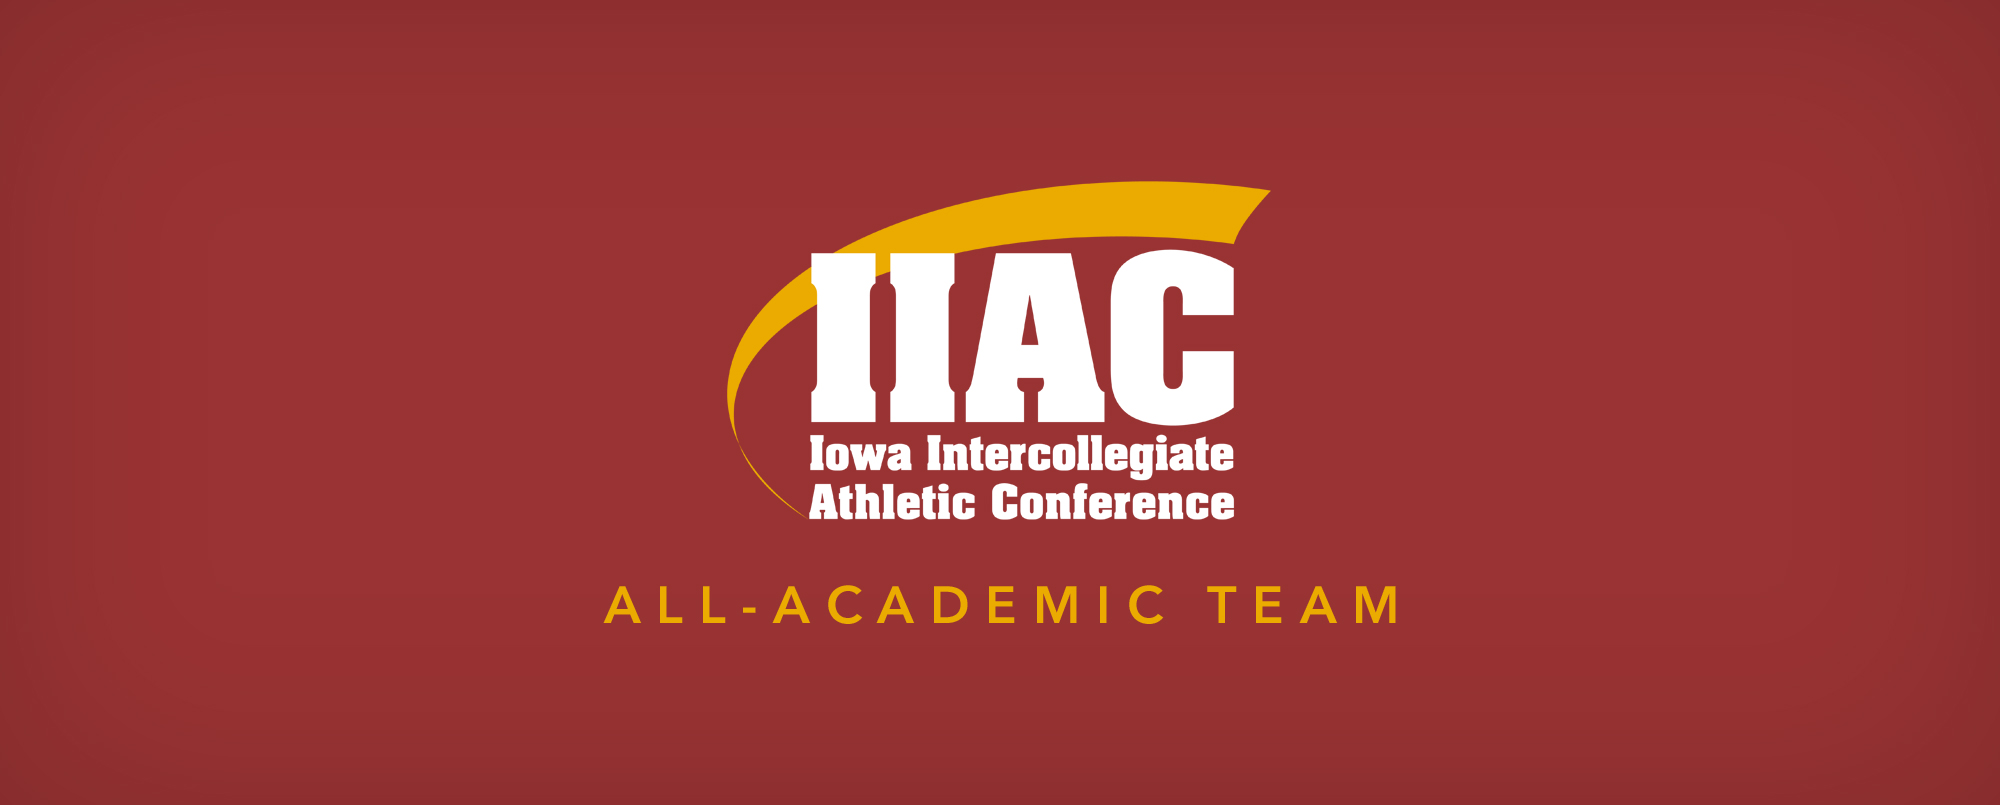 Simpson places 39 on IIAC All-Academic Team